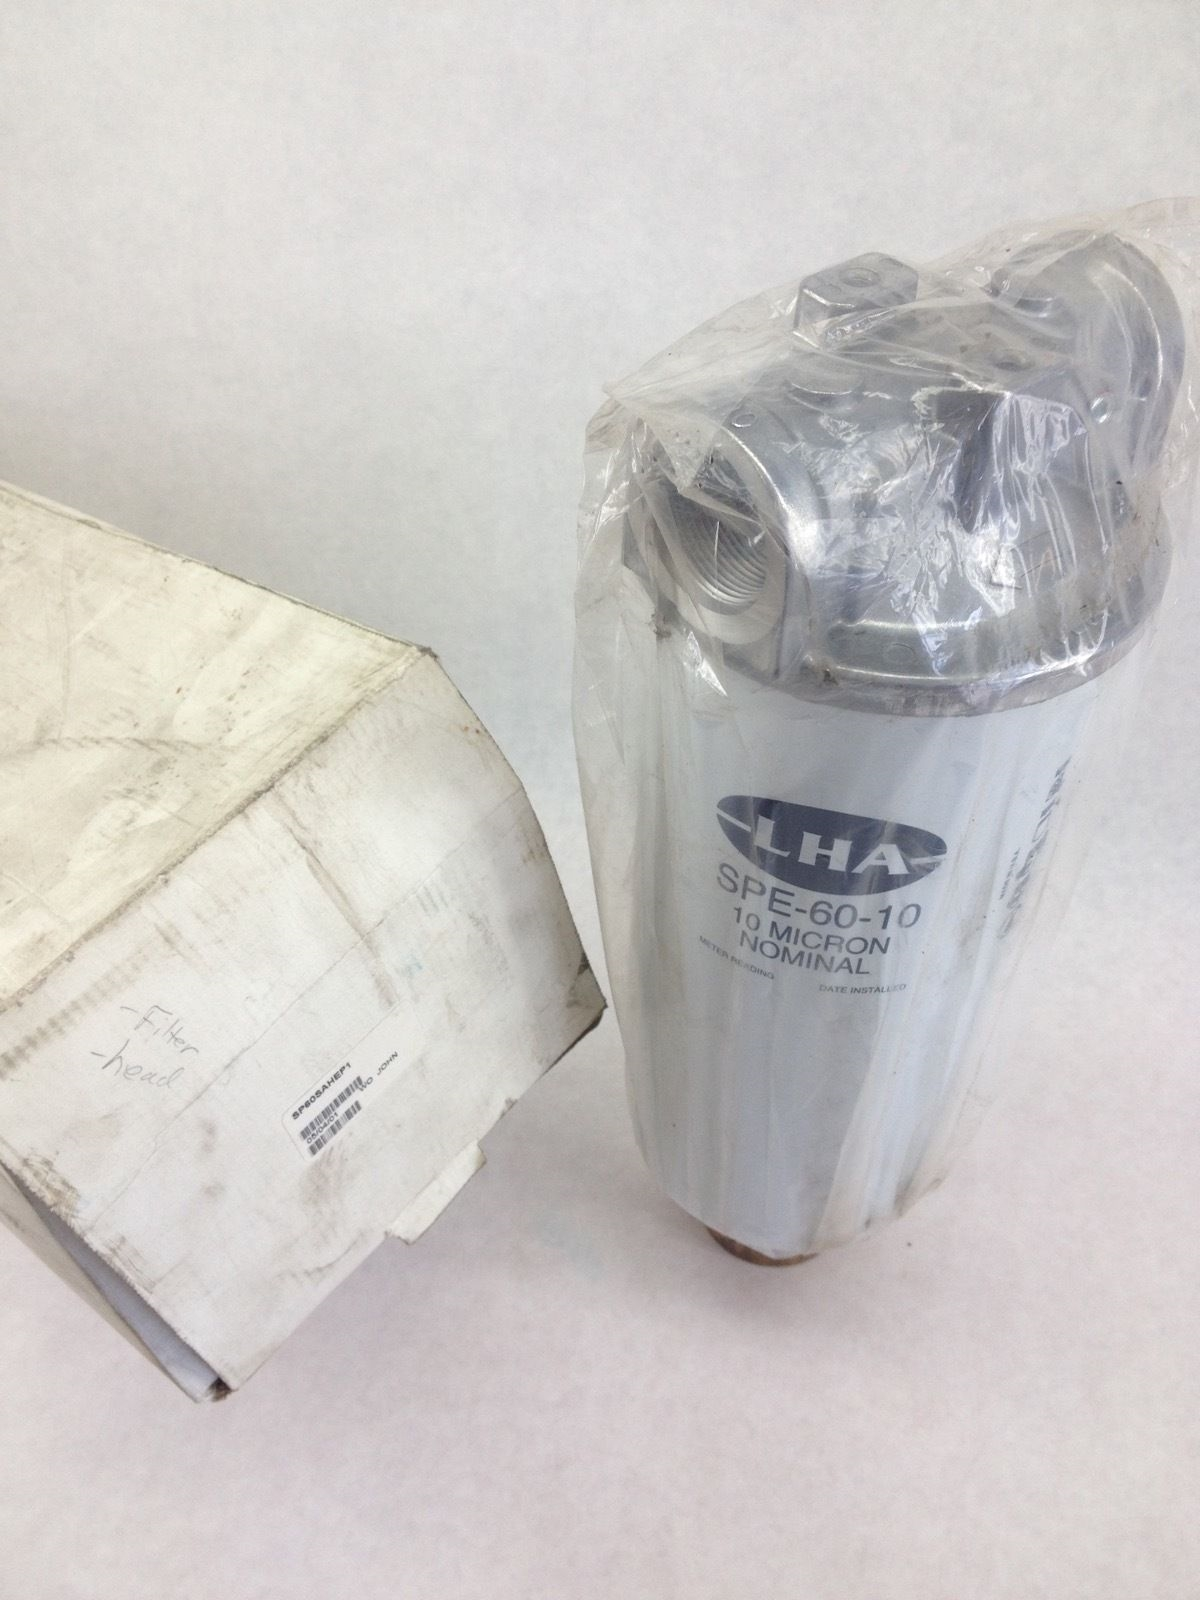 NEW! LHA SP60SAHEP1 IN-LINE FILTER ASSY 10 MICRON NOMINAL 1-1/4 FAST SHIP!(TOL) 1